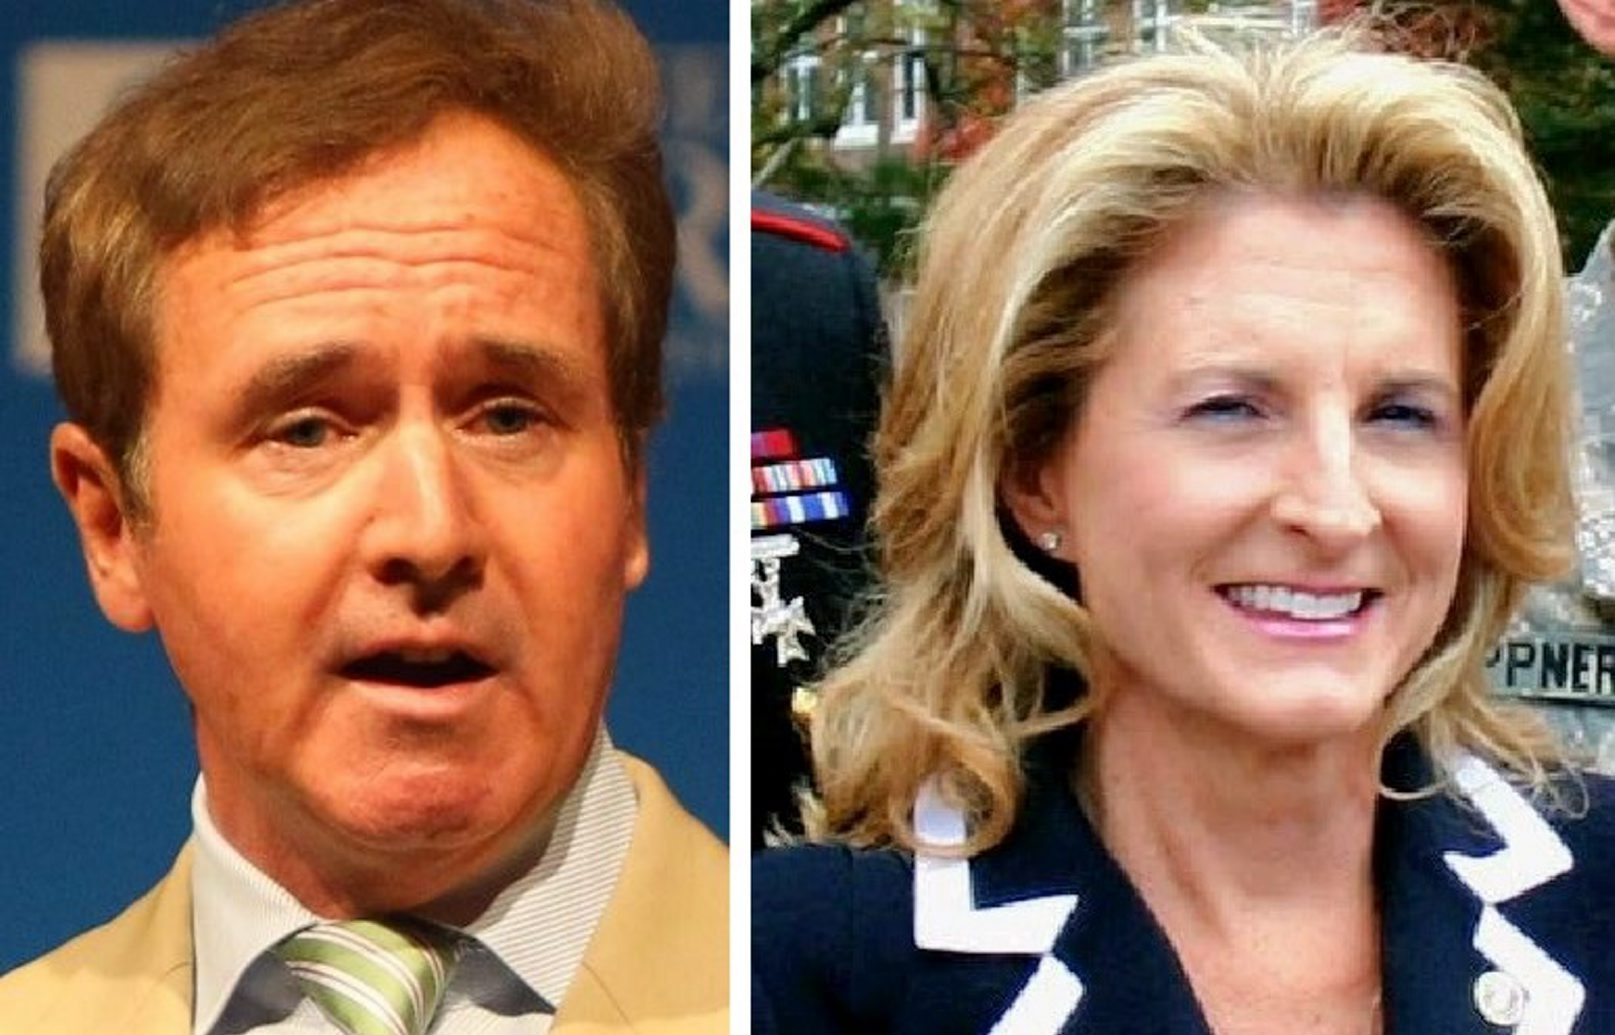 Democrat Brian Higgins is seeking a sixth term in Congress representing the 26th district; GOP challenger Kathy Weppner has a fiscal message.